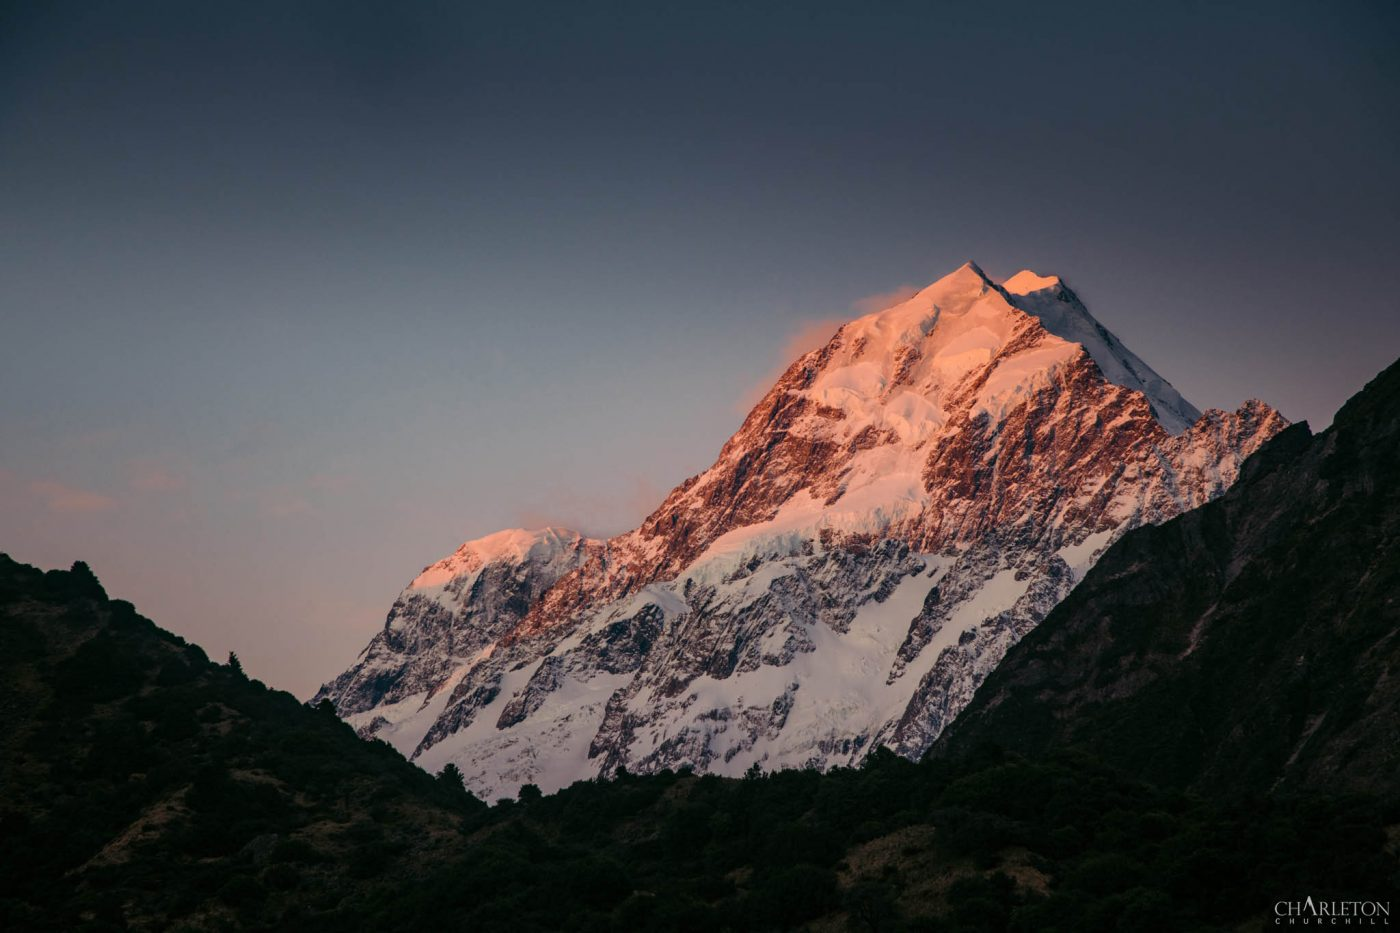 Mt. Cook during sunset and alpine light | Adventure photographer Charleton Churchill